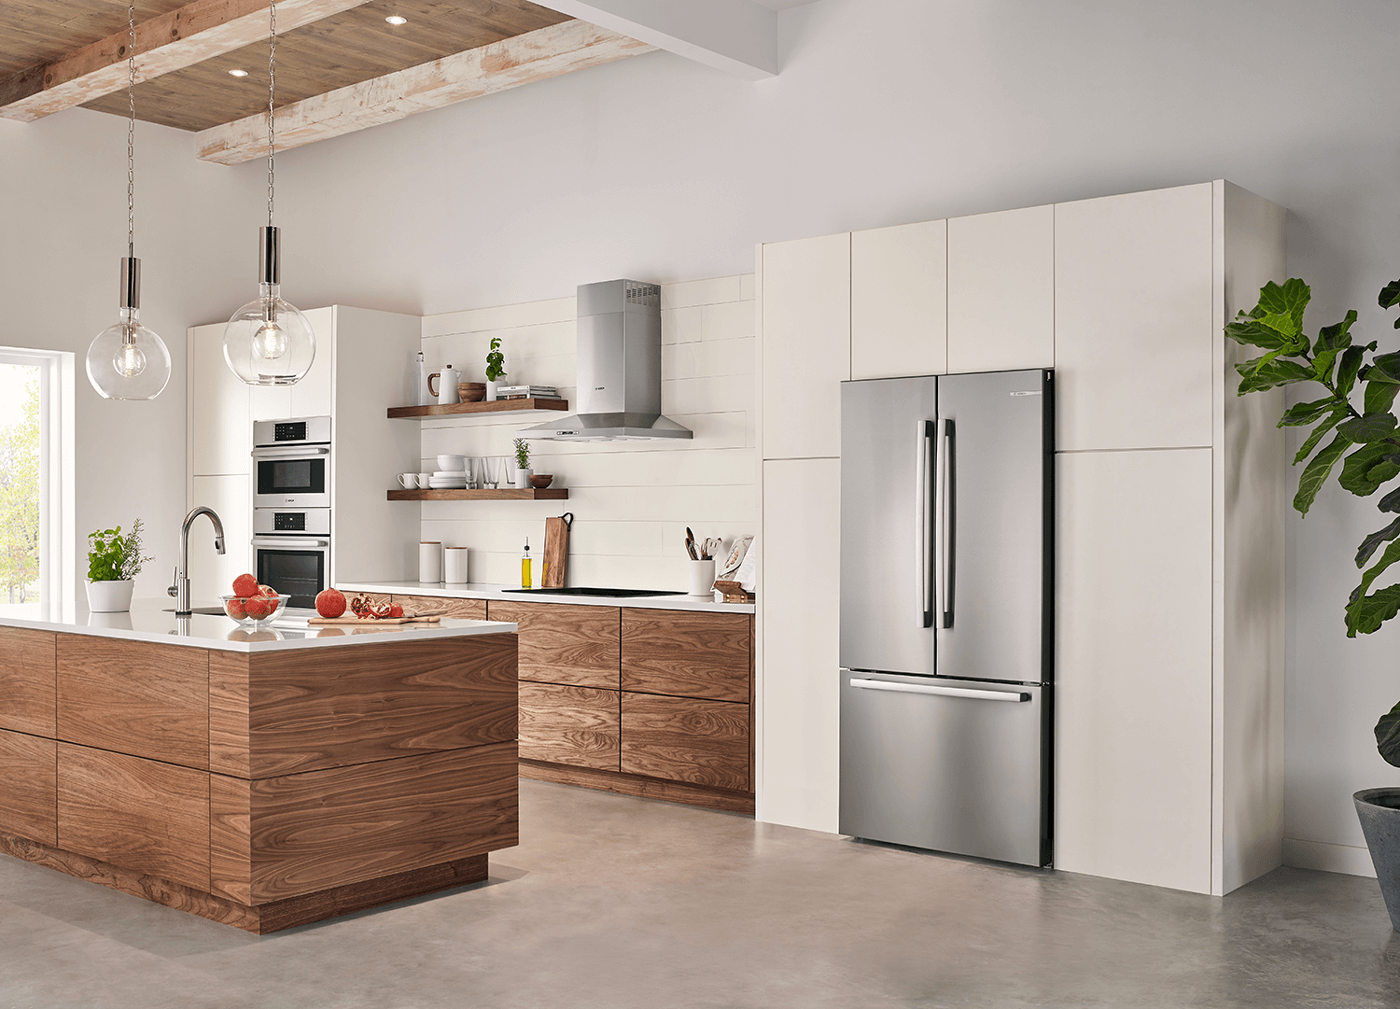 7 Tips For Achieving A Built In Refrigerator Look On A Budget Residential Products Online